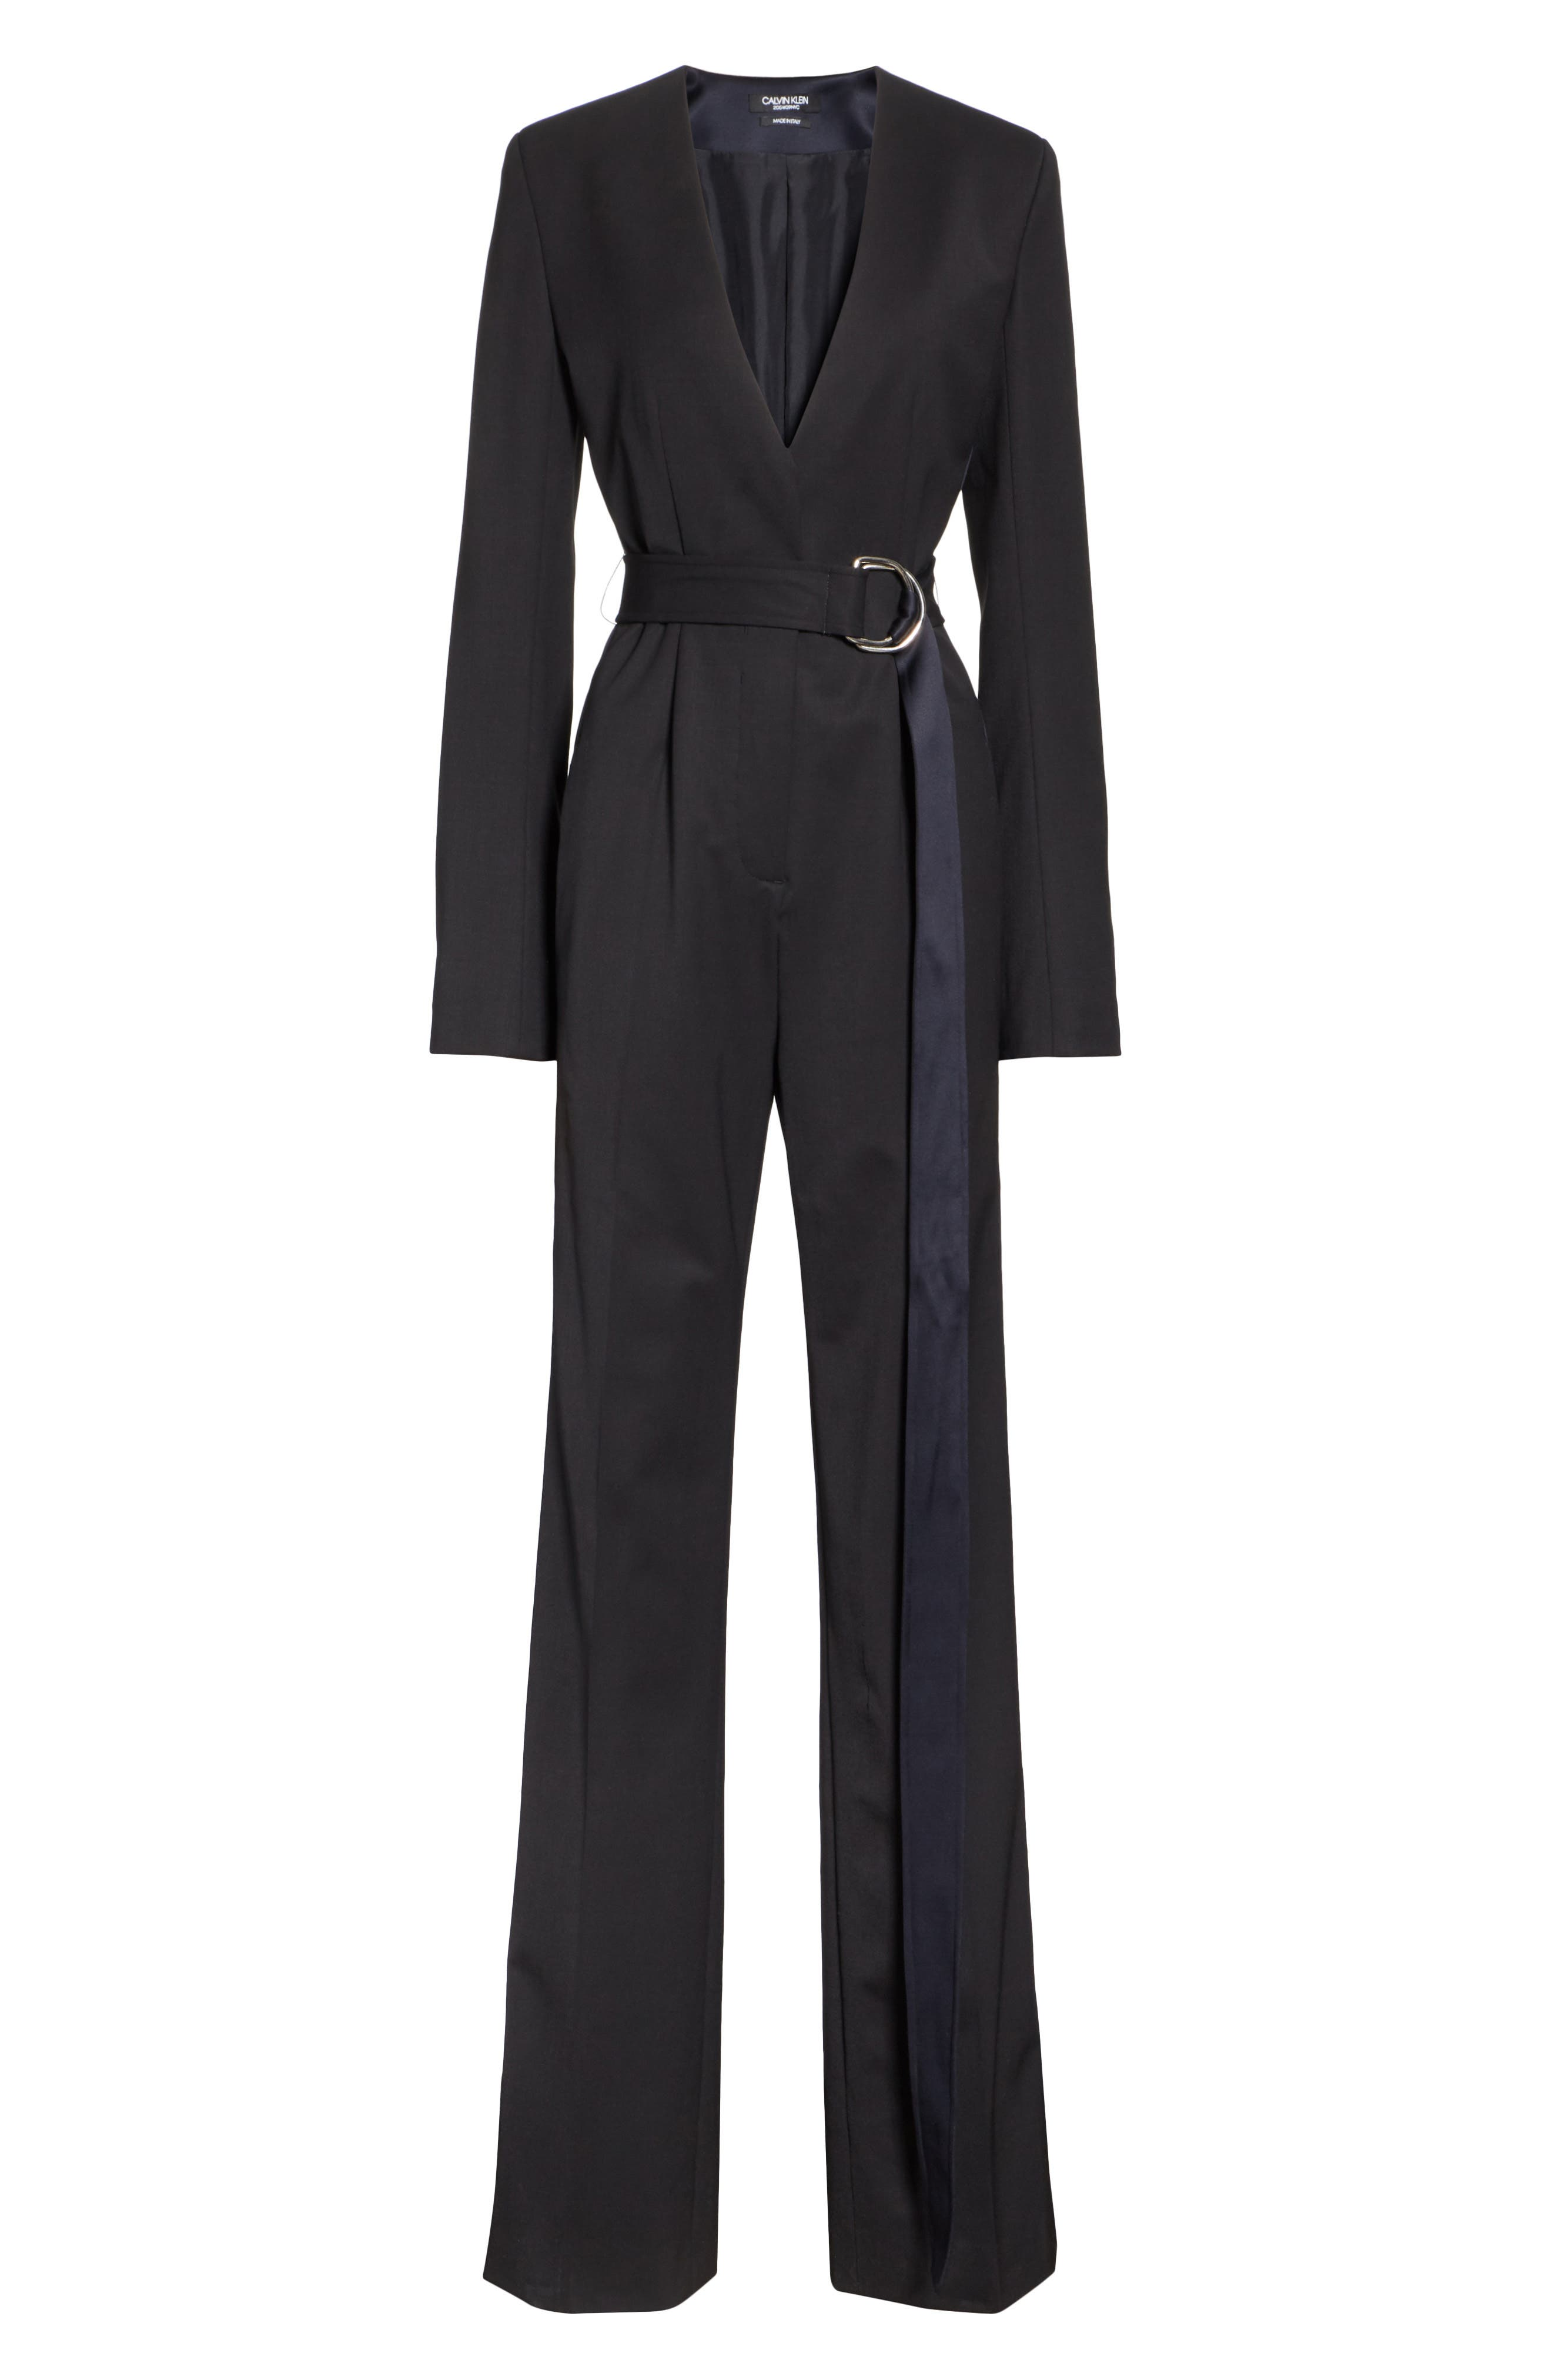 CALVIN KLEIN 205W39NYC, Side Stripe Wool Blend Jumpsuit, Alternate thumbnail 7, color, BLACK DARK NAVY